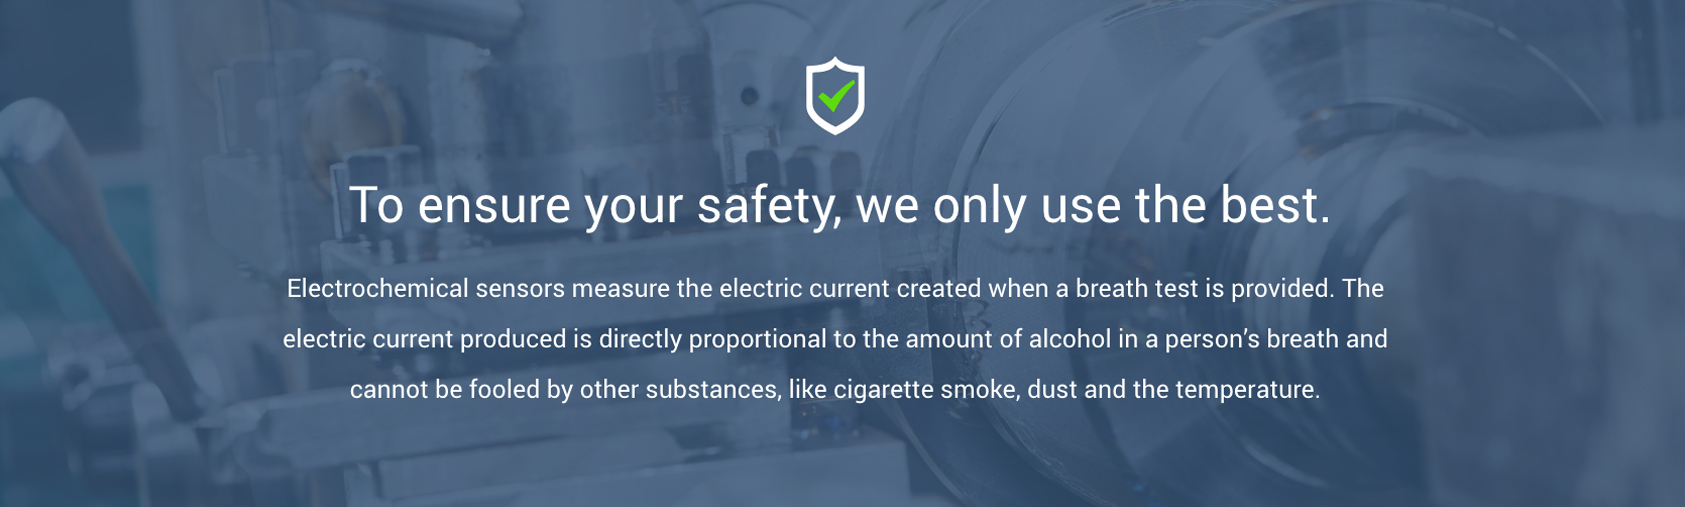 To ensure your safety, we only use the best. Our breathalyzers contain